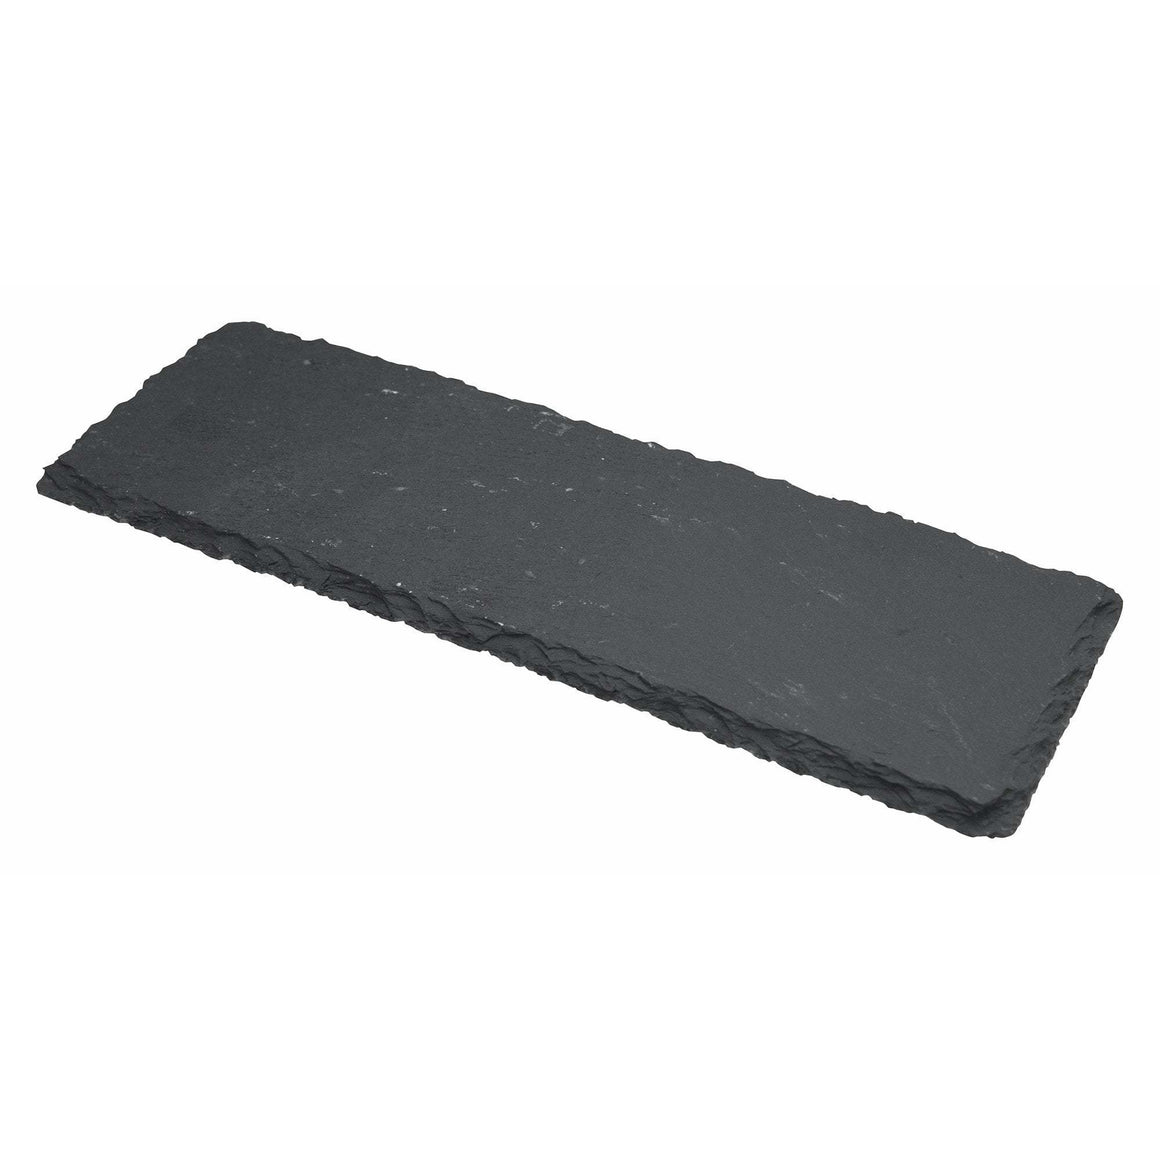 "Winco - WDL001-301 - 11-1/2""L x 4"" Slate Rectangular Platter, 6 pcs/pack - Dinnerware"